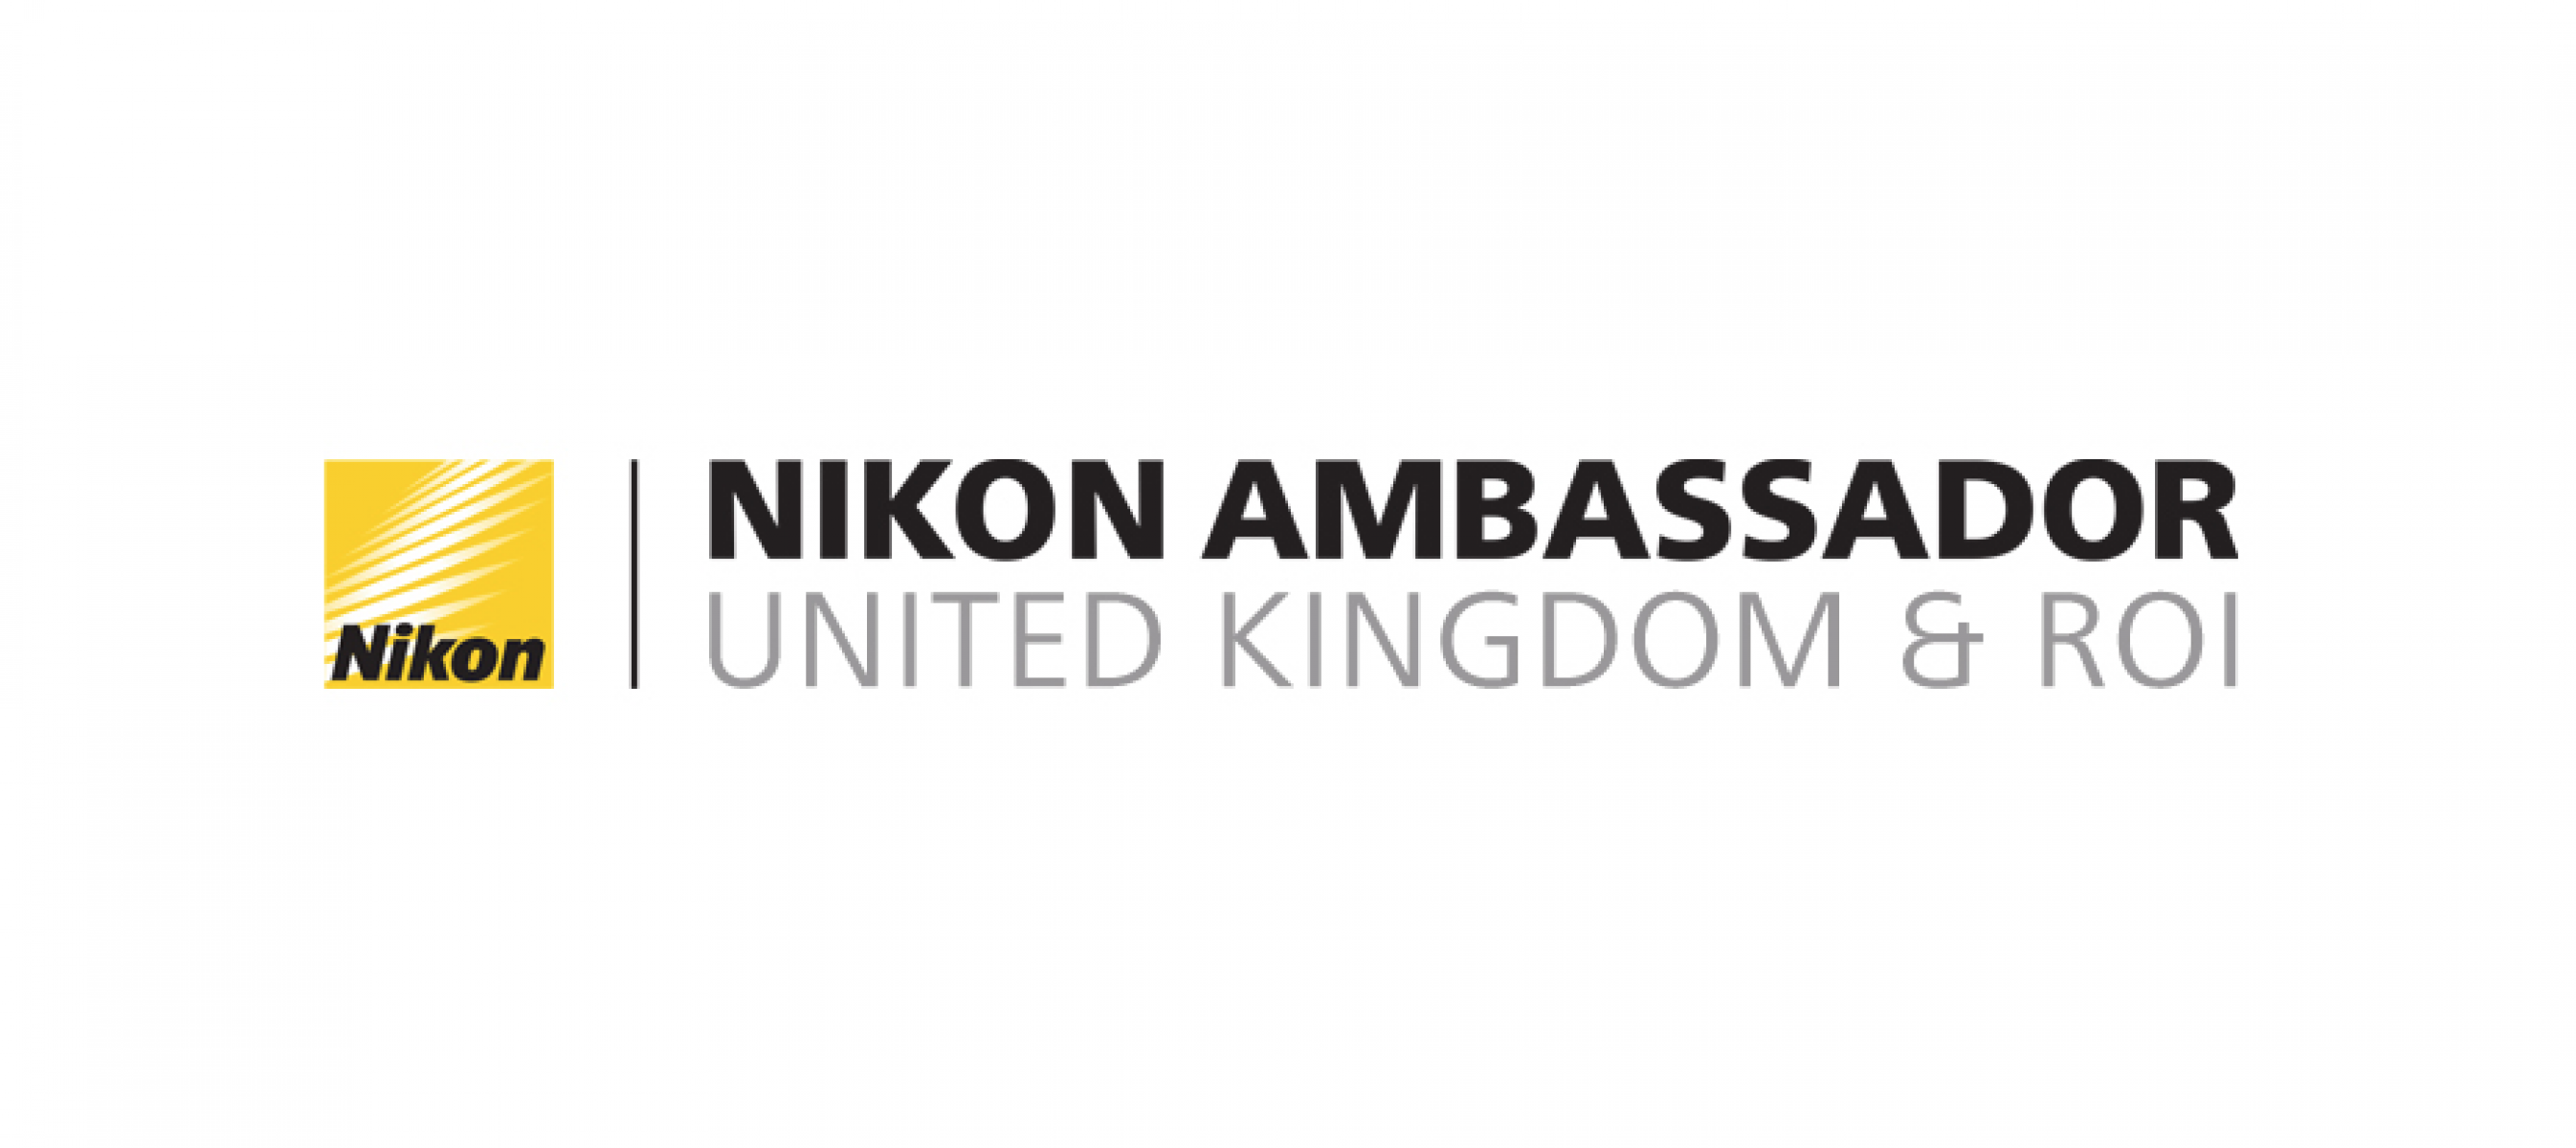 David Yarrow Announced As Ambassador For Nikon UK